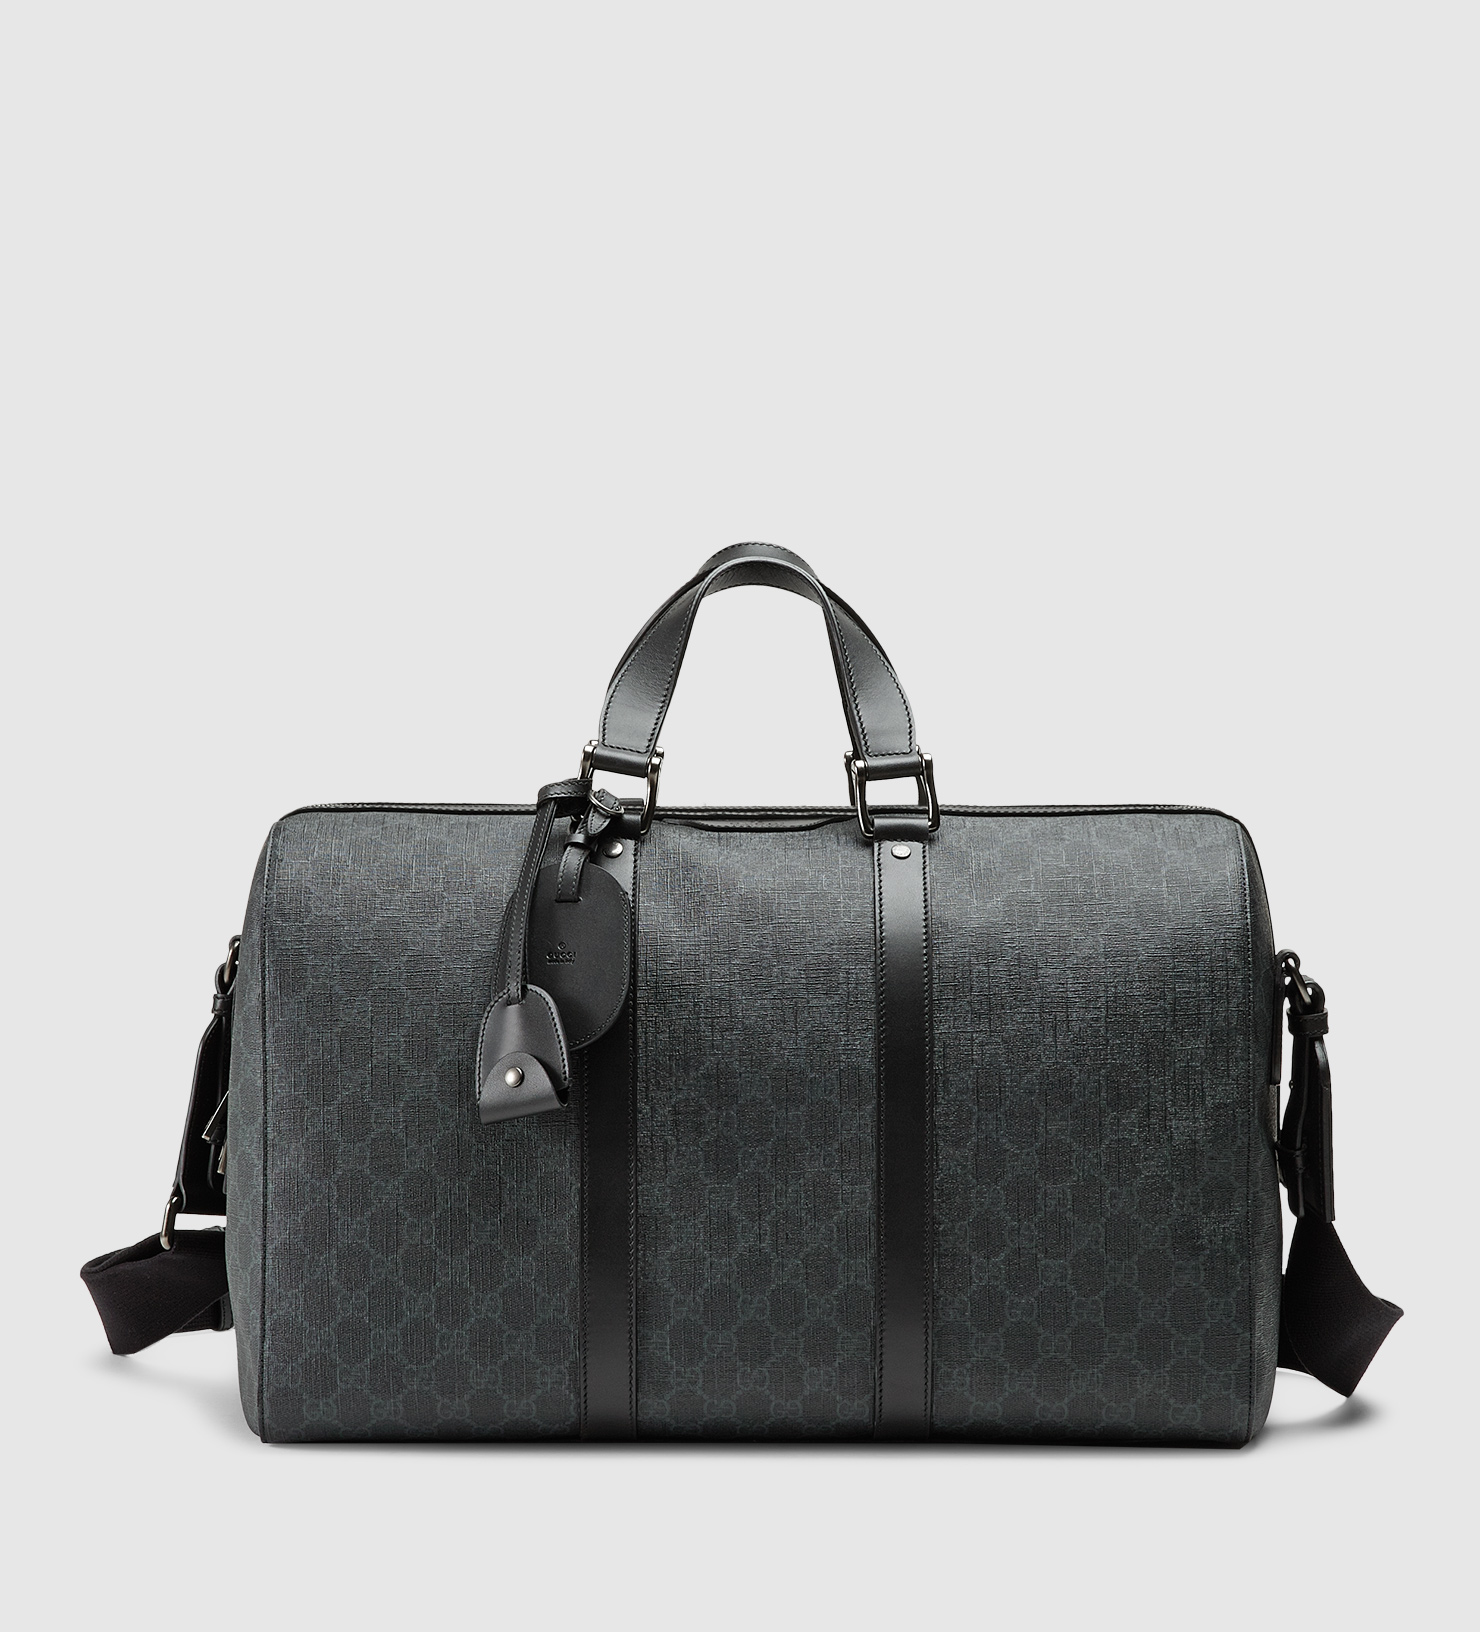 e4bb7283d46ac5 Gucci Gg Supreme Canvas Carry-on Duffle Bag in Black for Men - Lyst